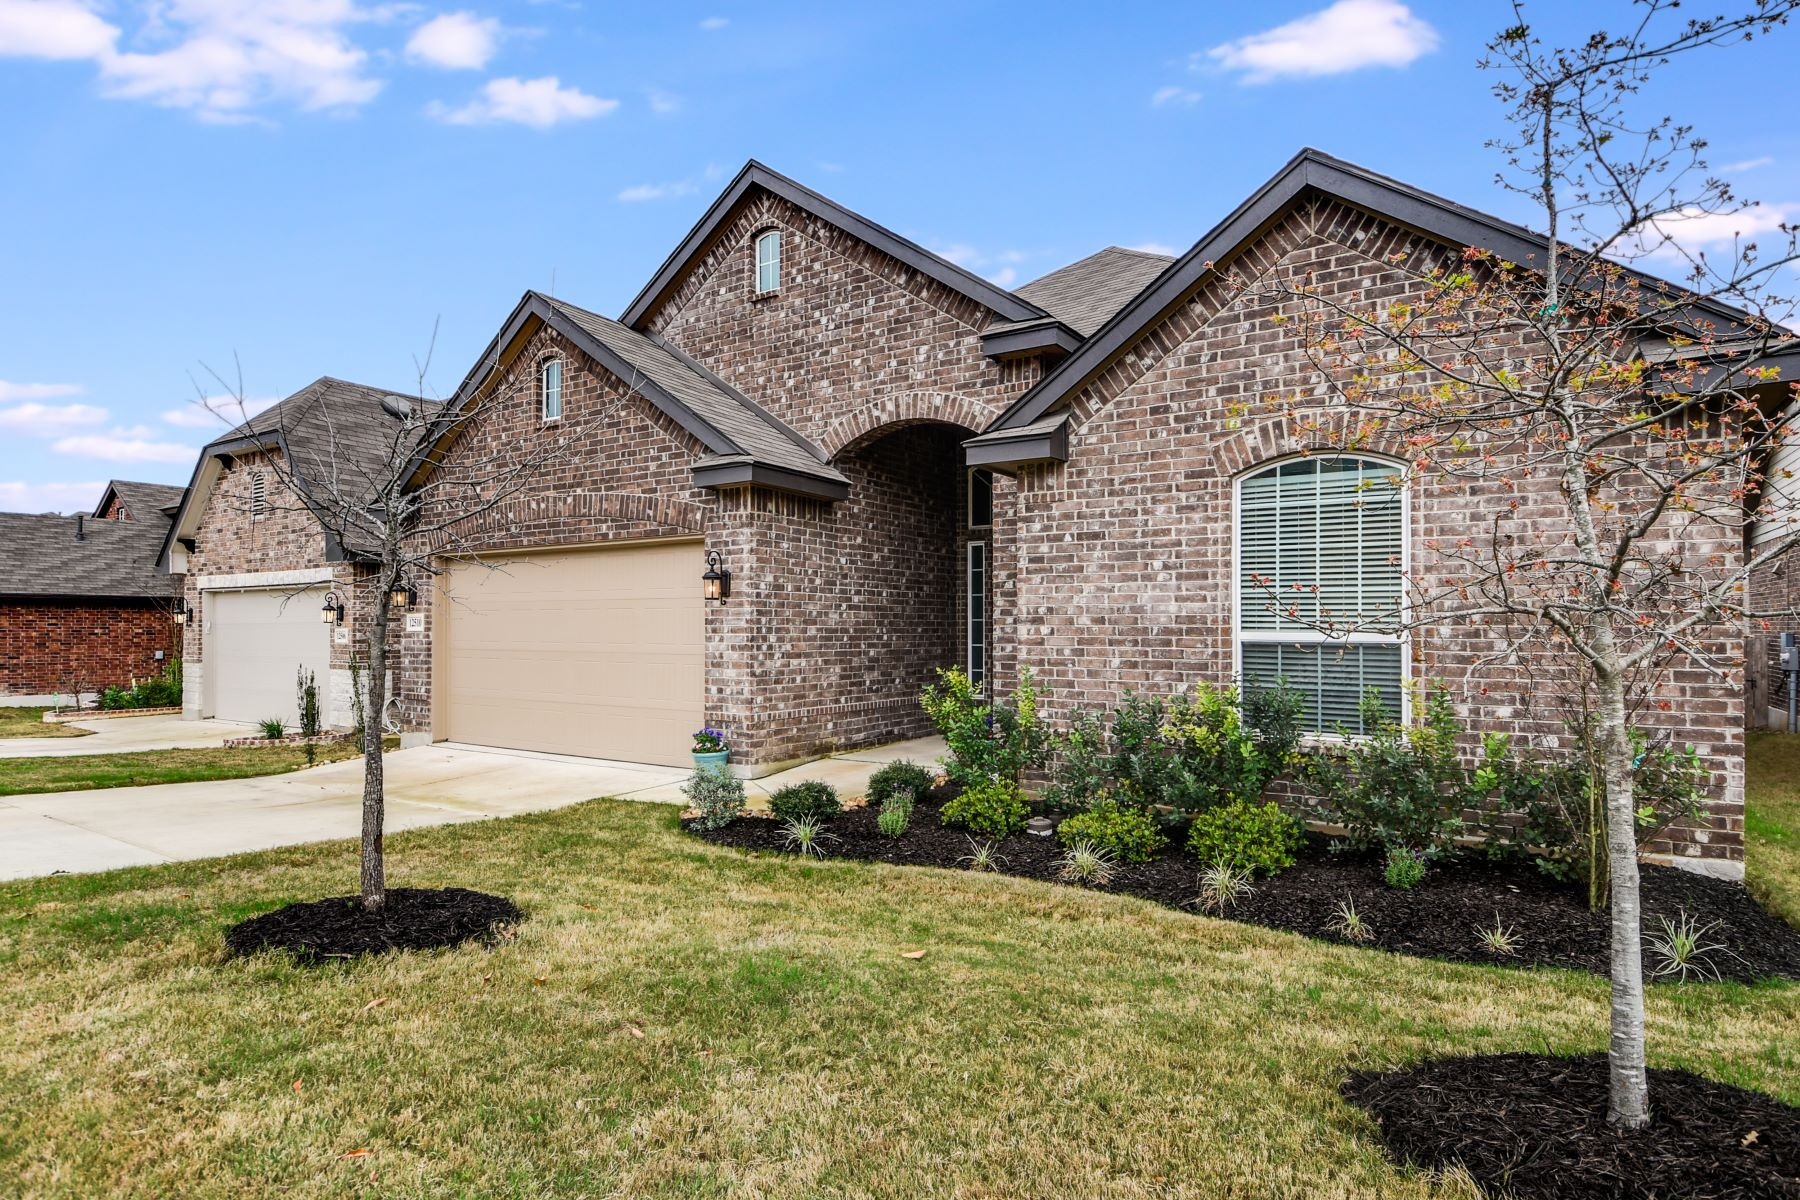 Single Family Home for Sale at Impressive 1.5 Story in Alamo Ranch 12510 Loving Mill San Antonio, Texas 78253 United States